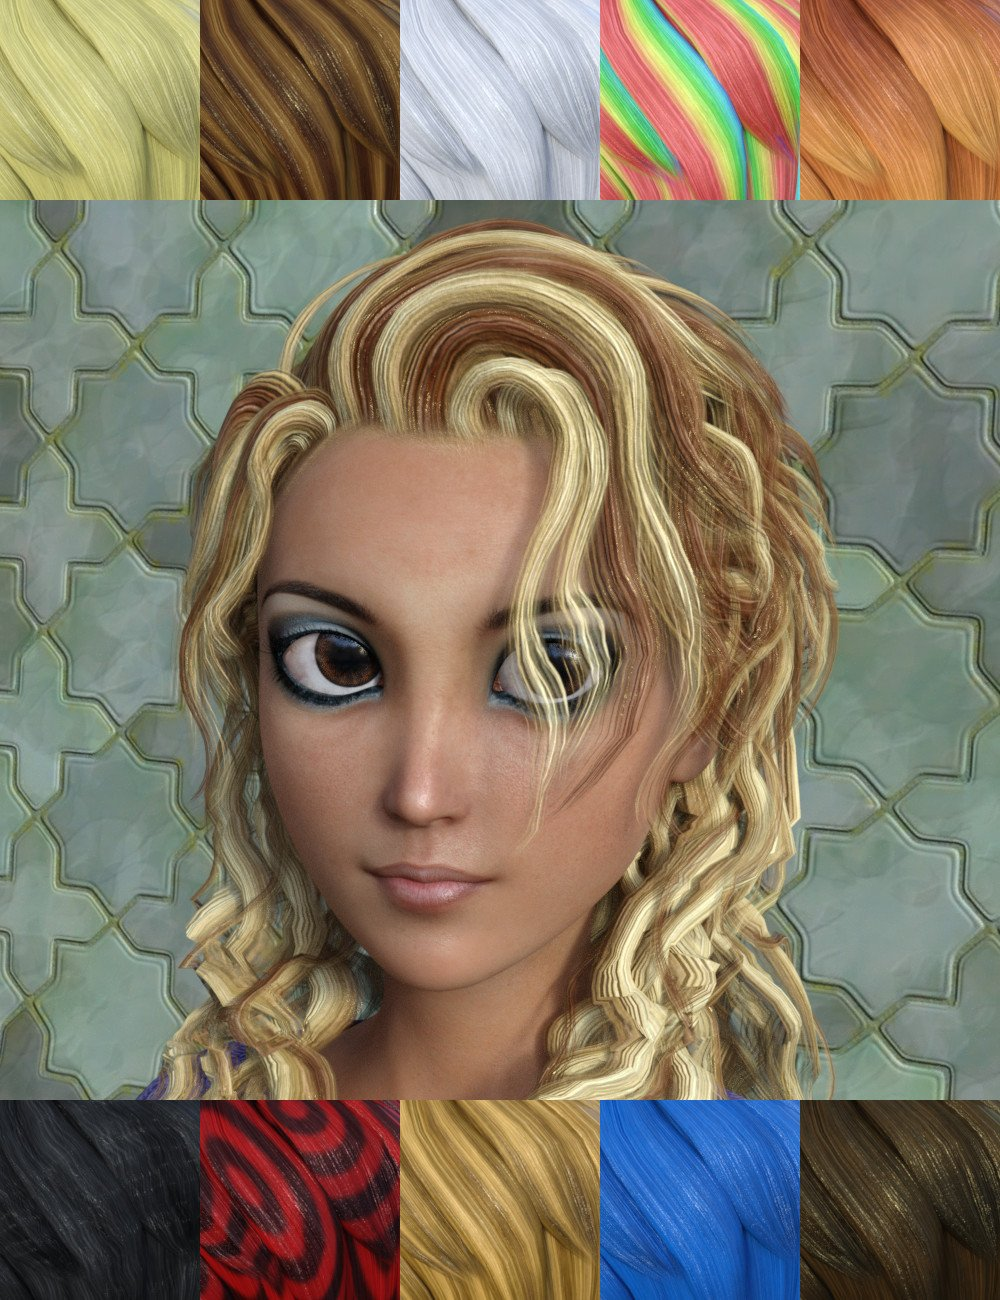 FSL Toon Hair Shaders Iray by: Fuseling, 3D Models by Daz 3D